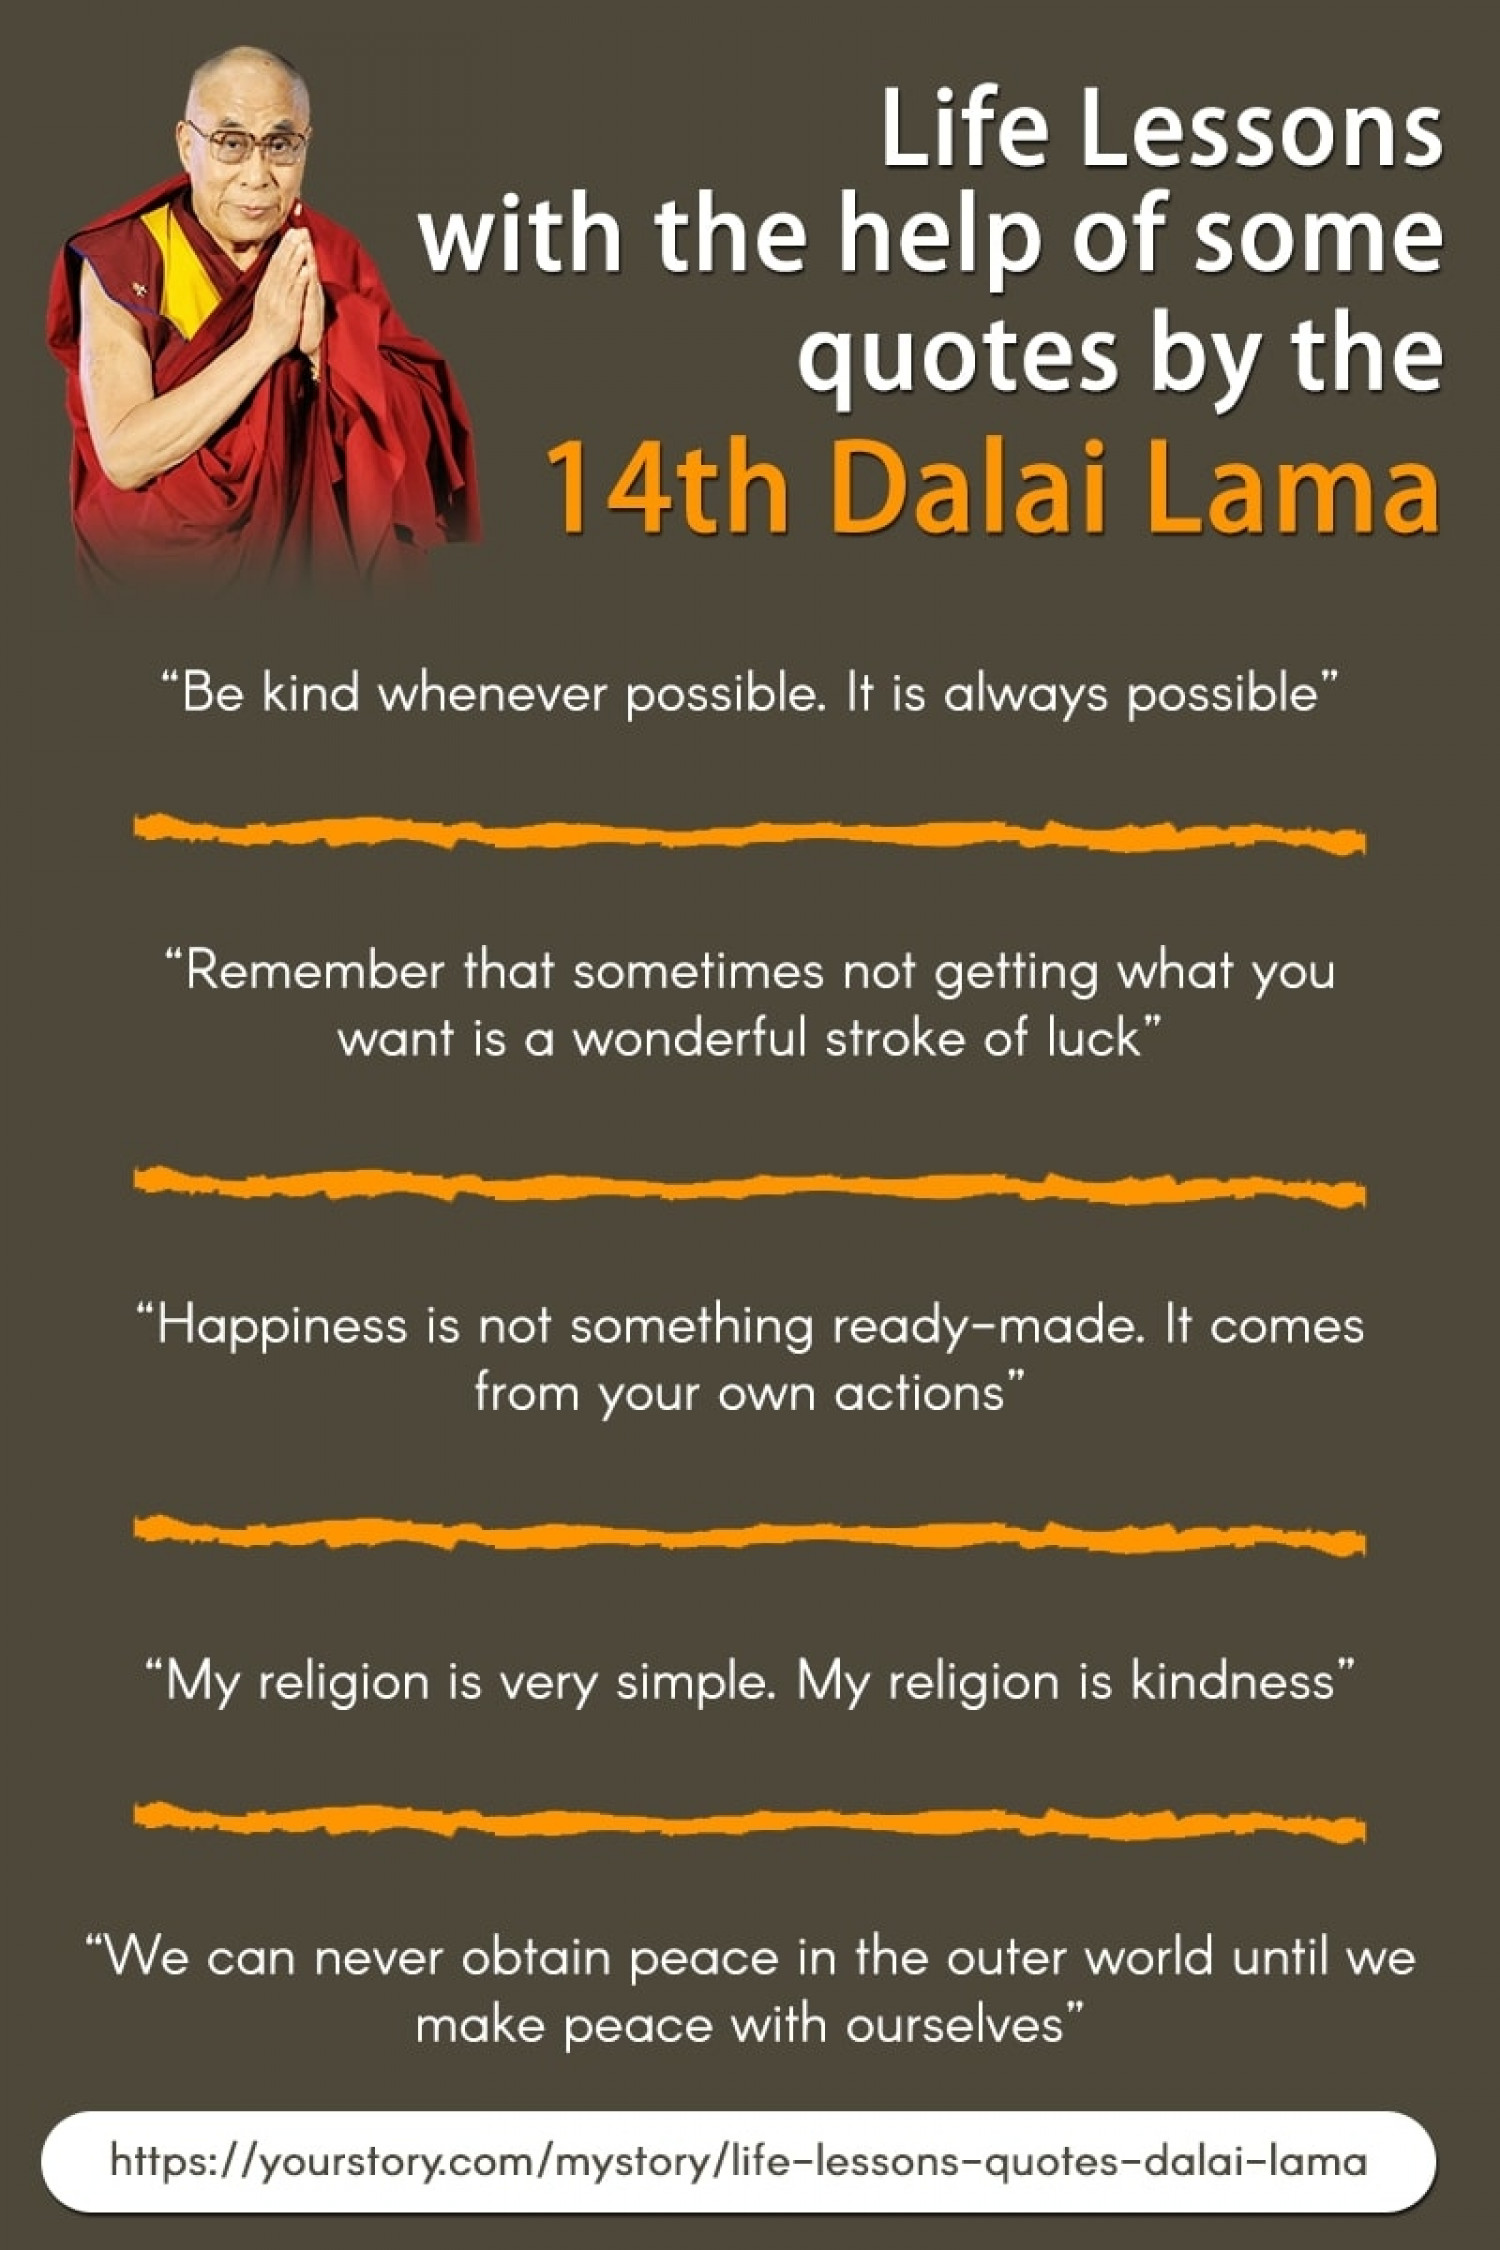 Life Lessons Quotes of 14th Dalai Lama By Kunal Bansal Chandigarh Infographic